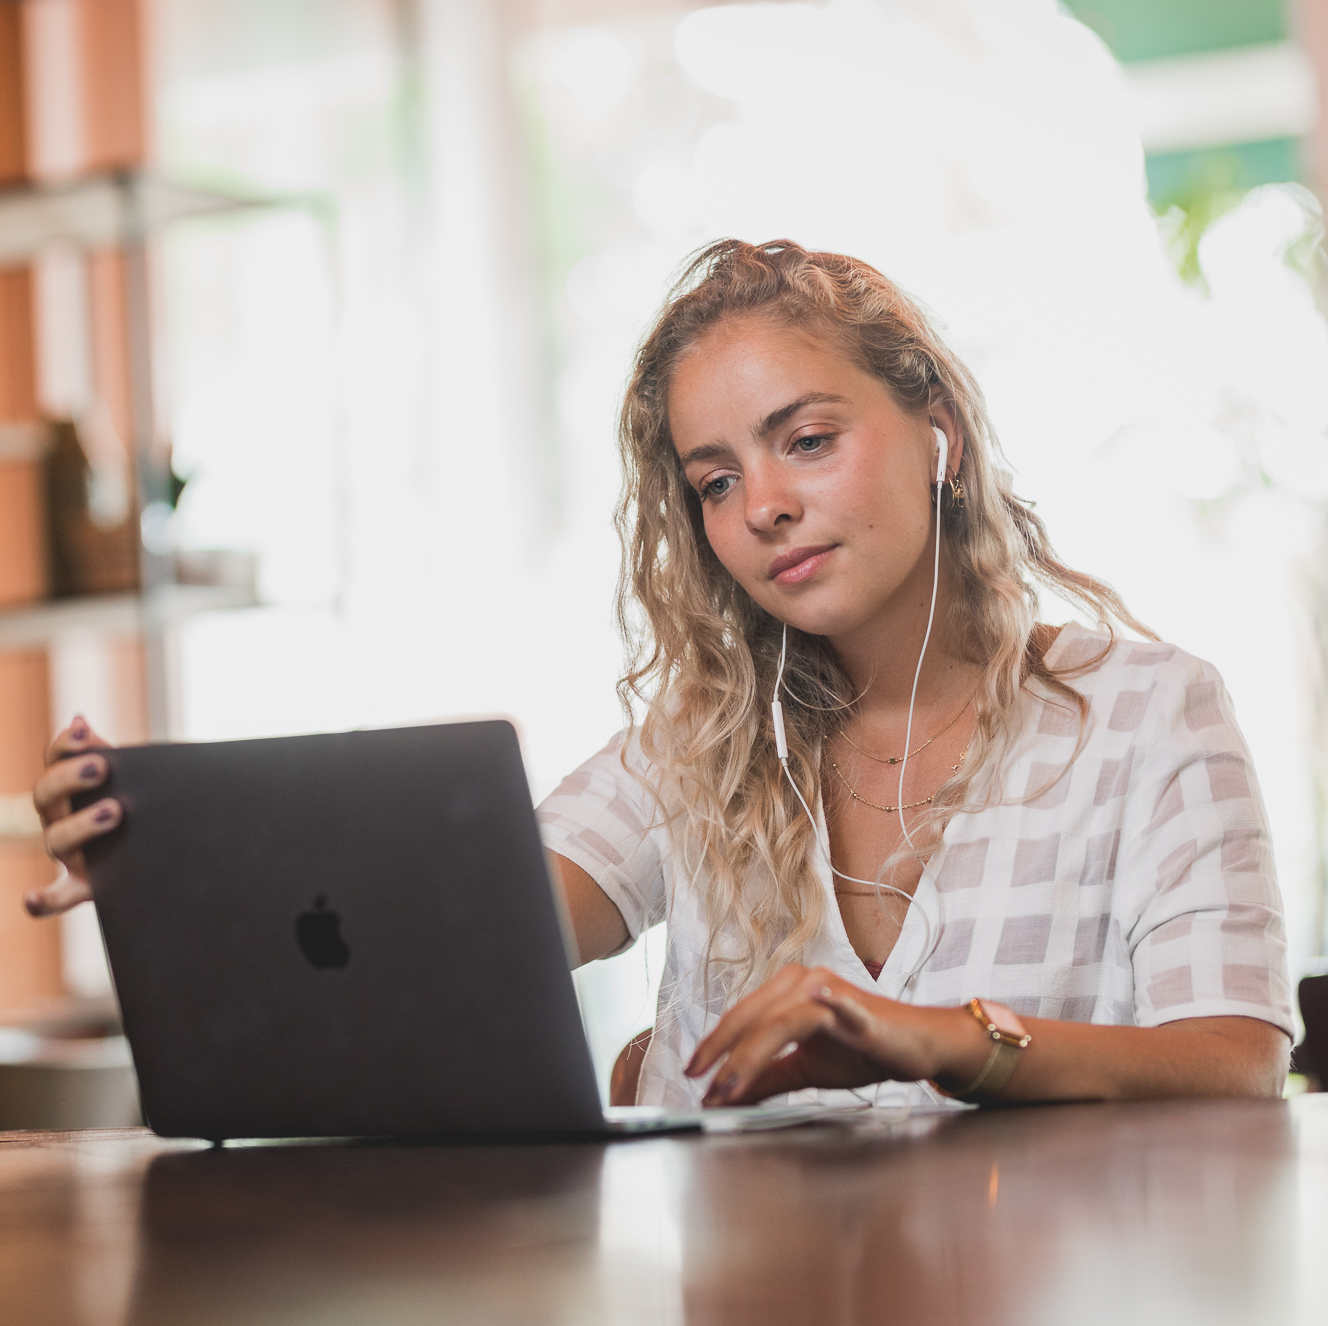 Woman looking thoughtfully at laptop in front of her